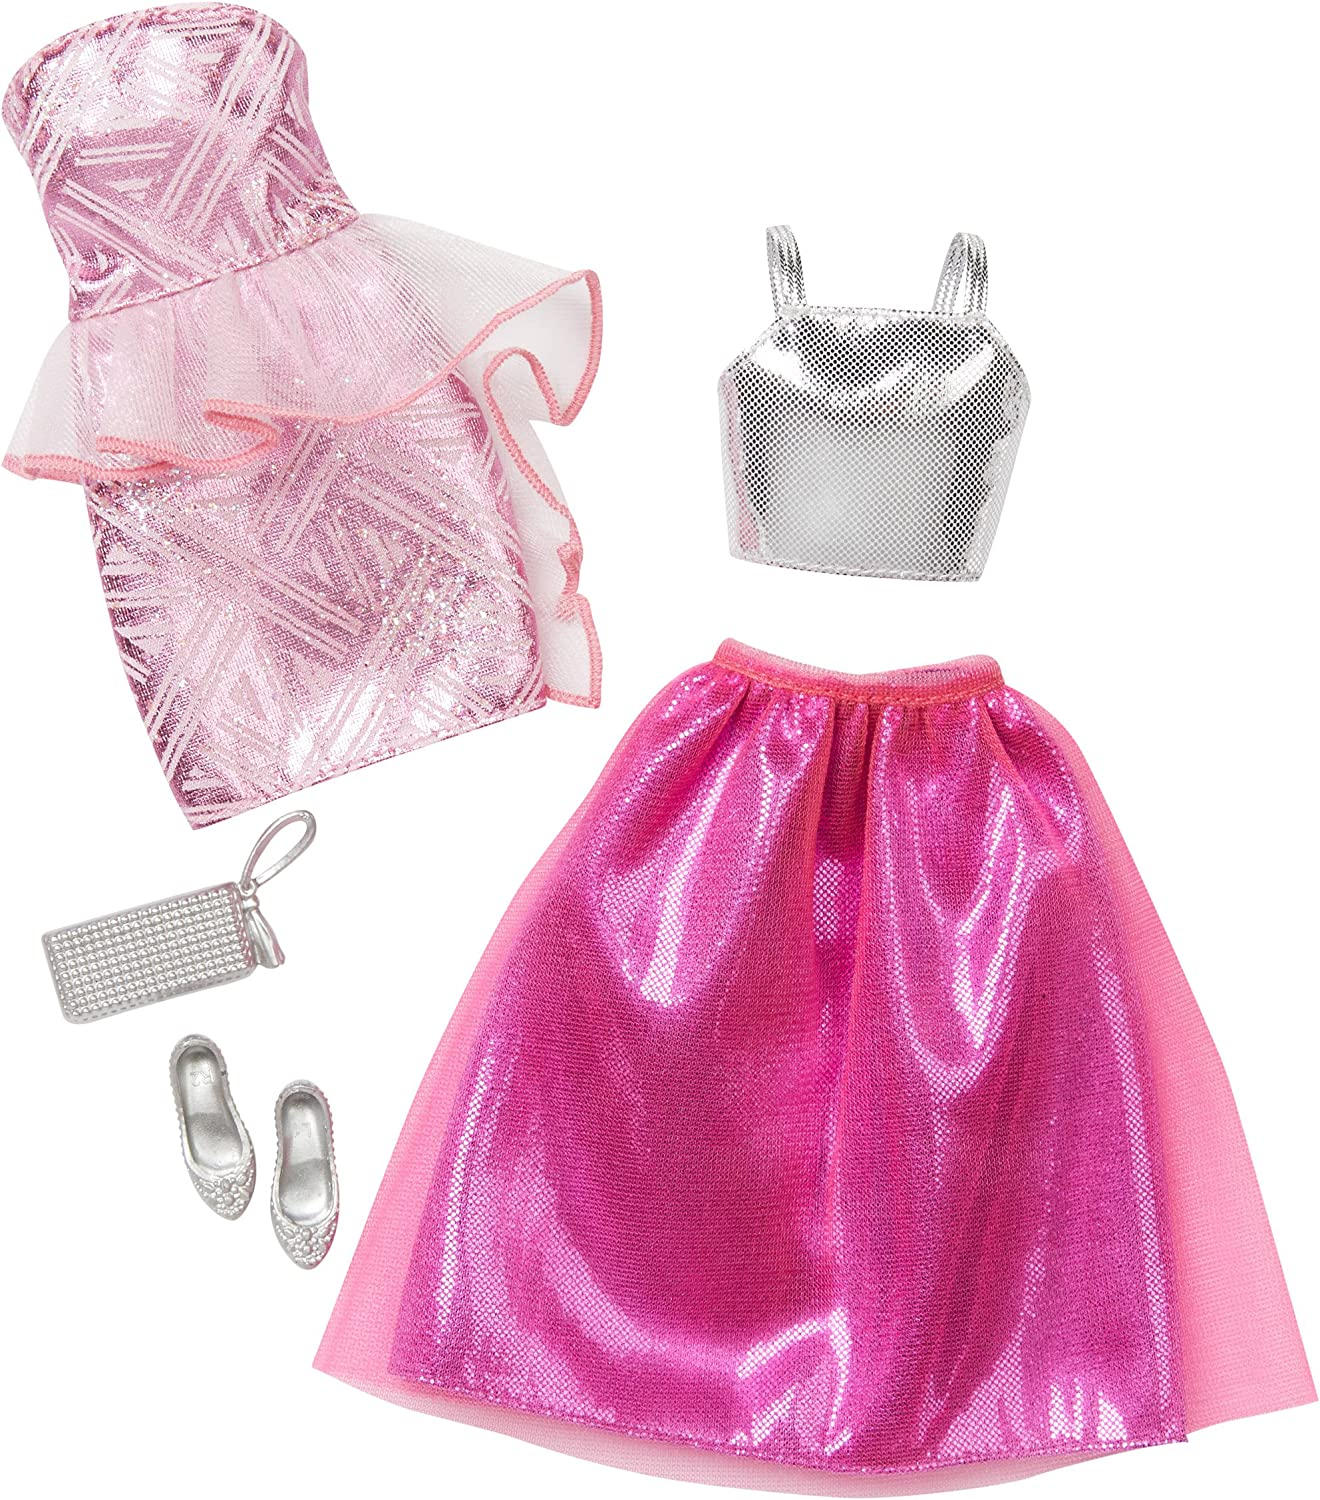 2 Pack Barbie Fashions Complete Look